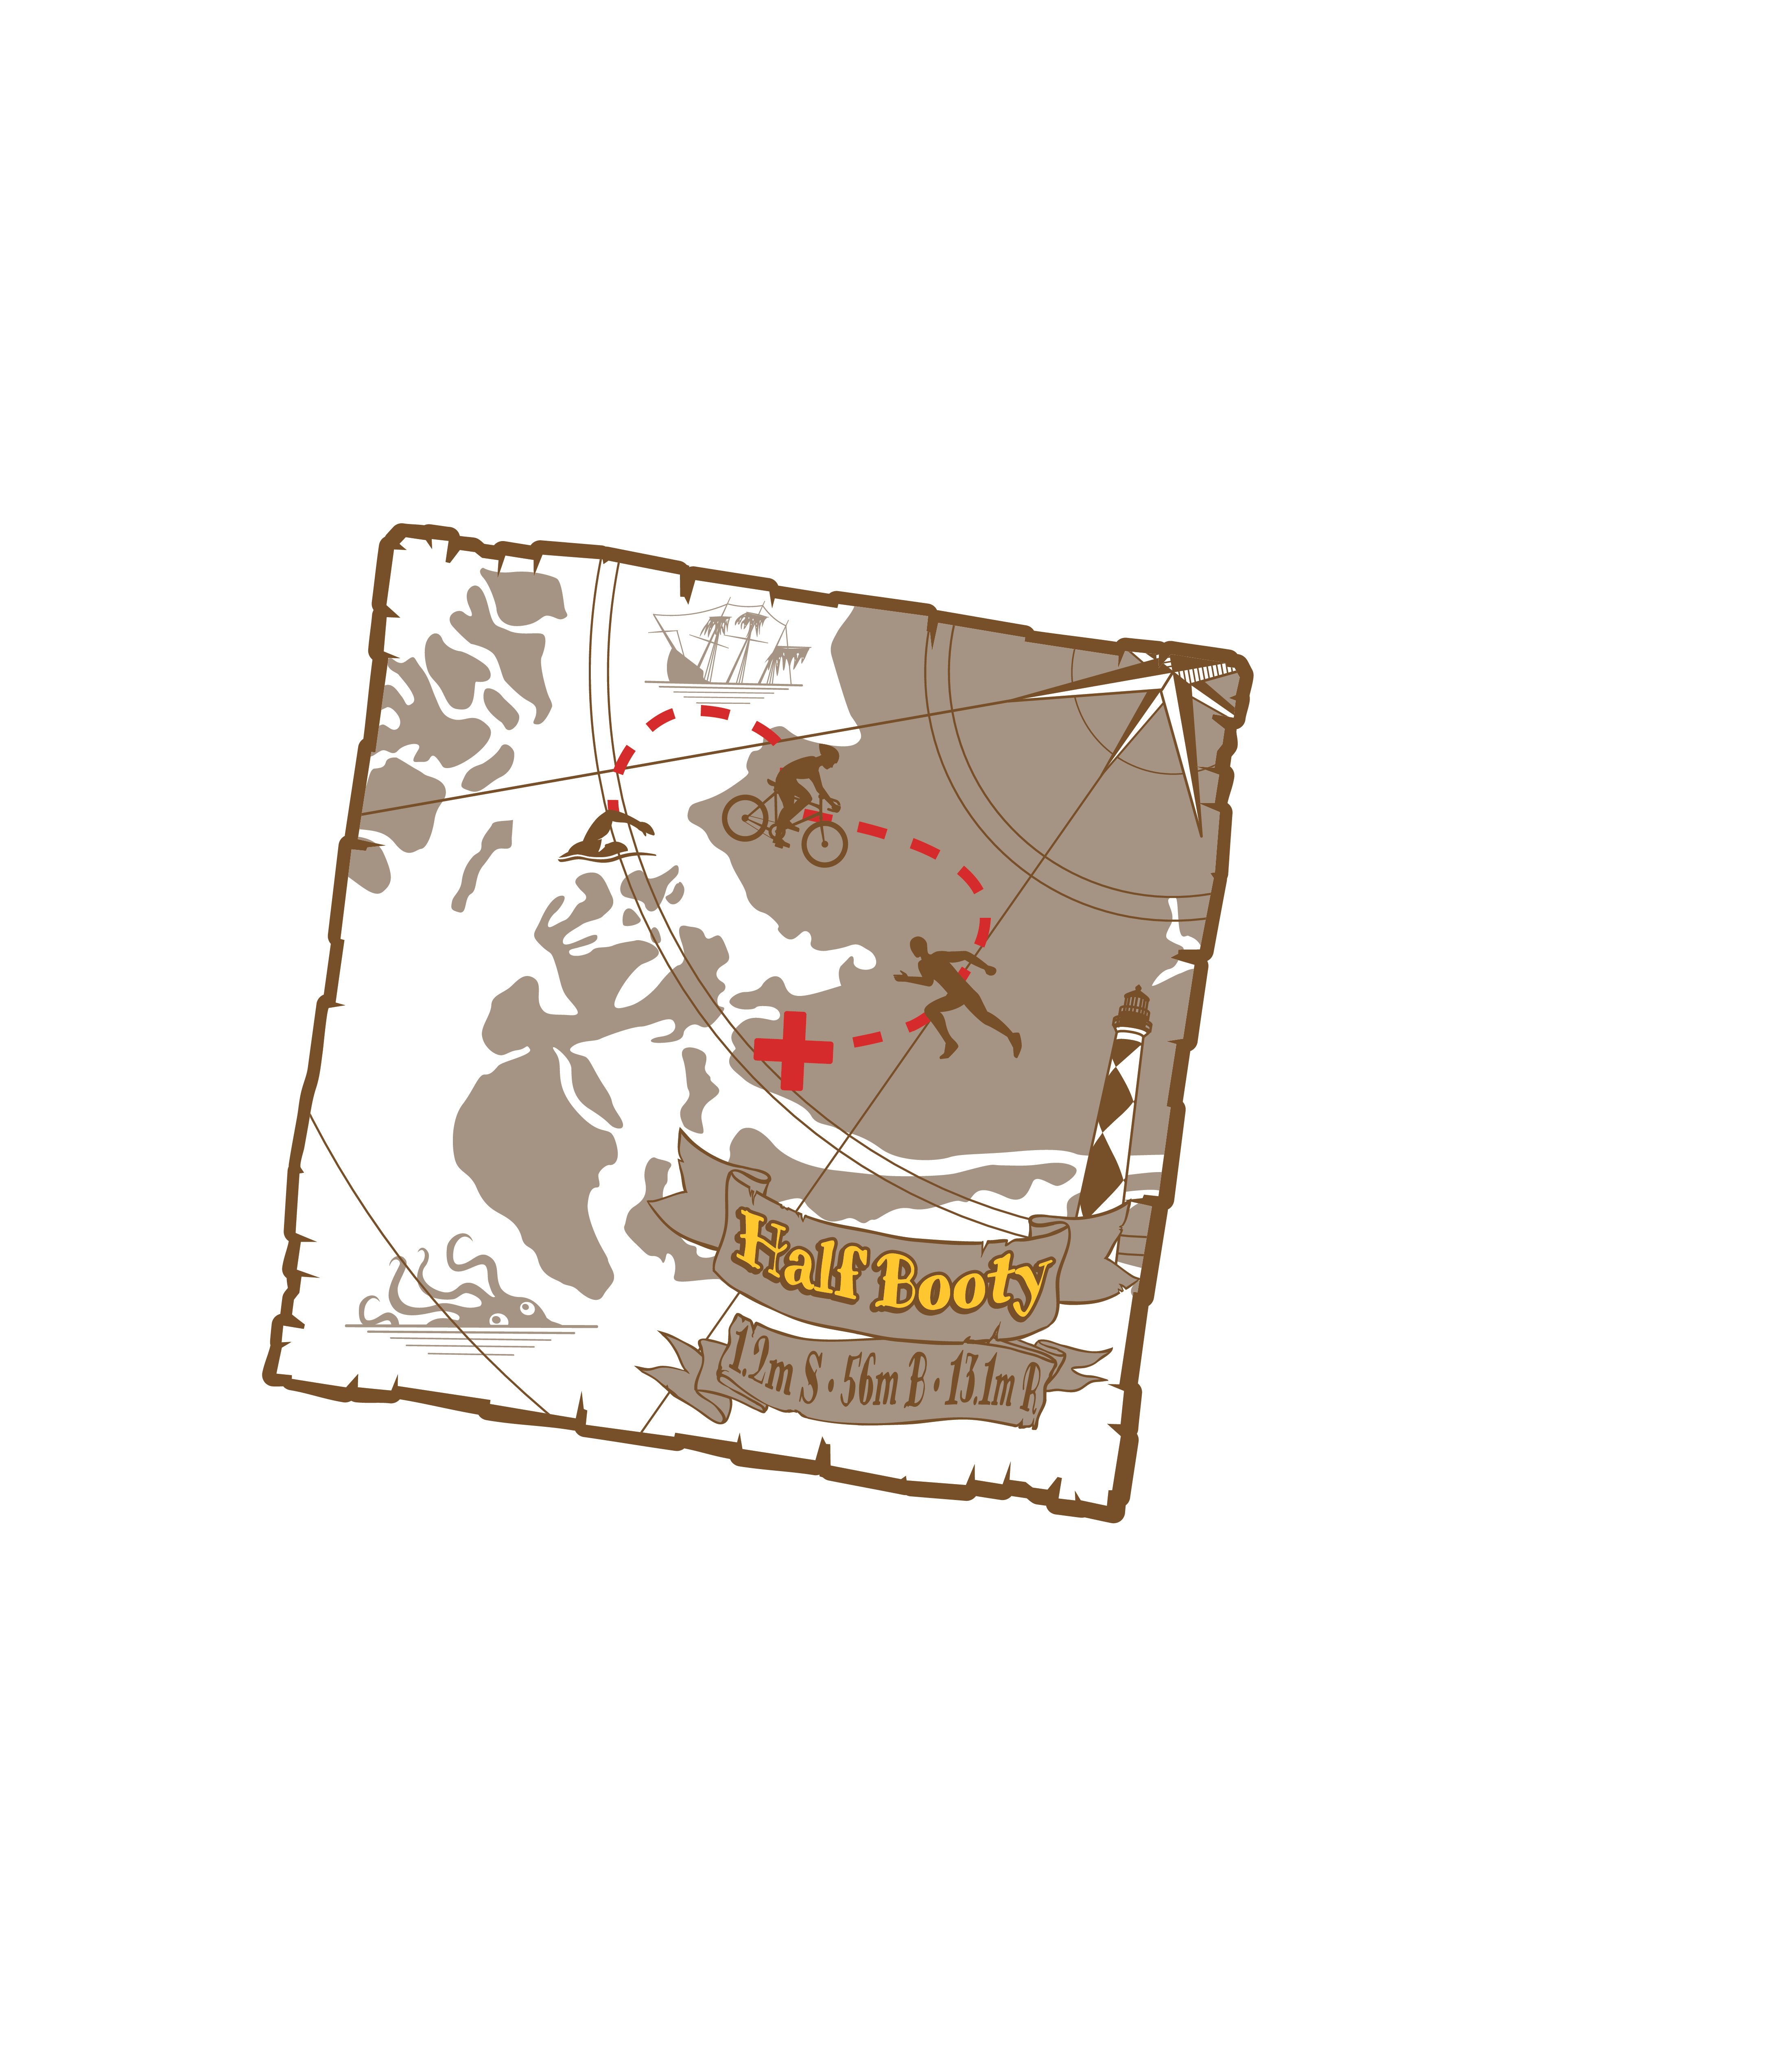 Crystal Coast Full and Half Booty Triathlon